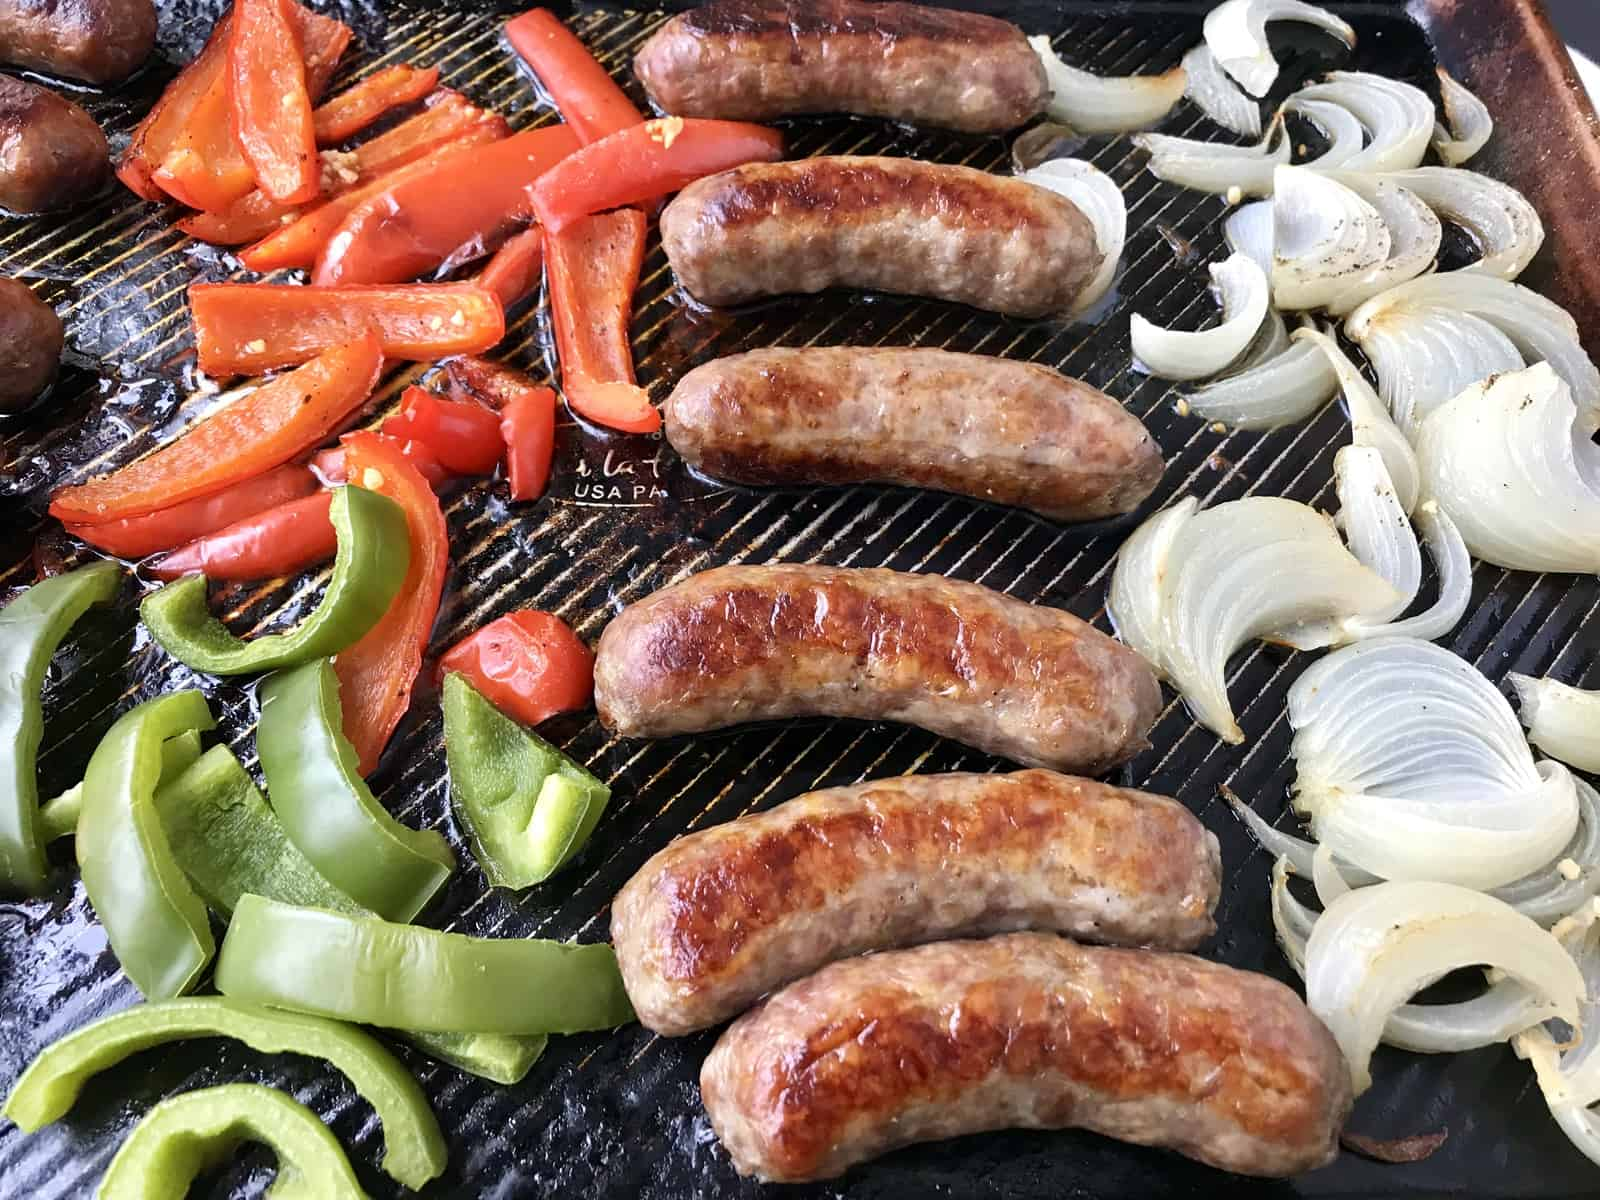 Sheet pan of sausage, peppers, and onions